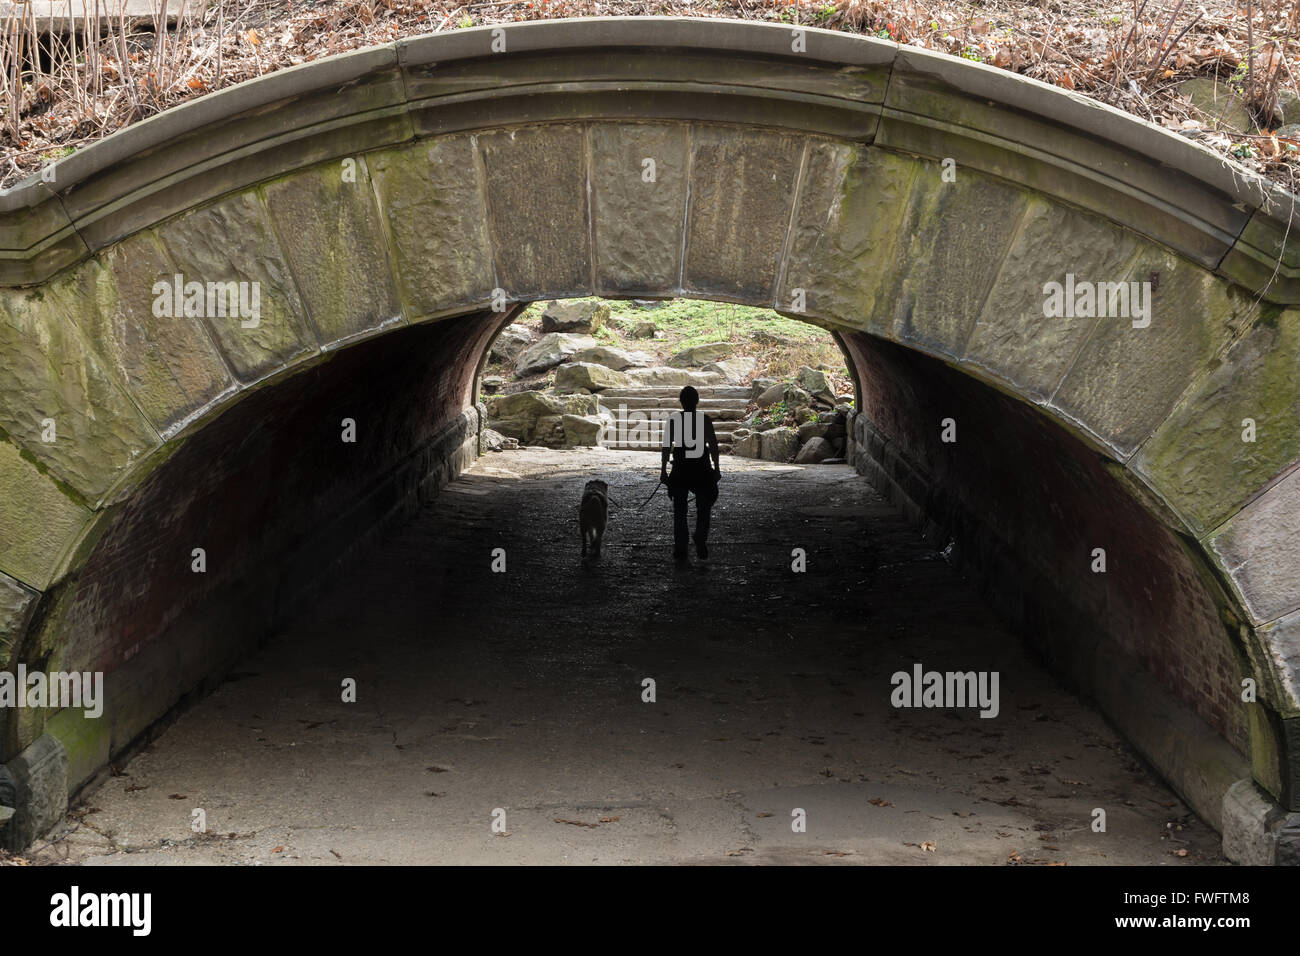 Woman walking her dog alone through an old dark tunnel in Central Park, New York City, during the daytime - Stock Image